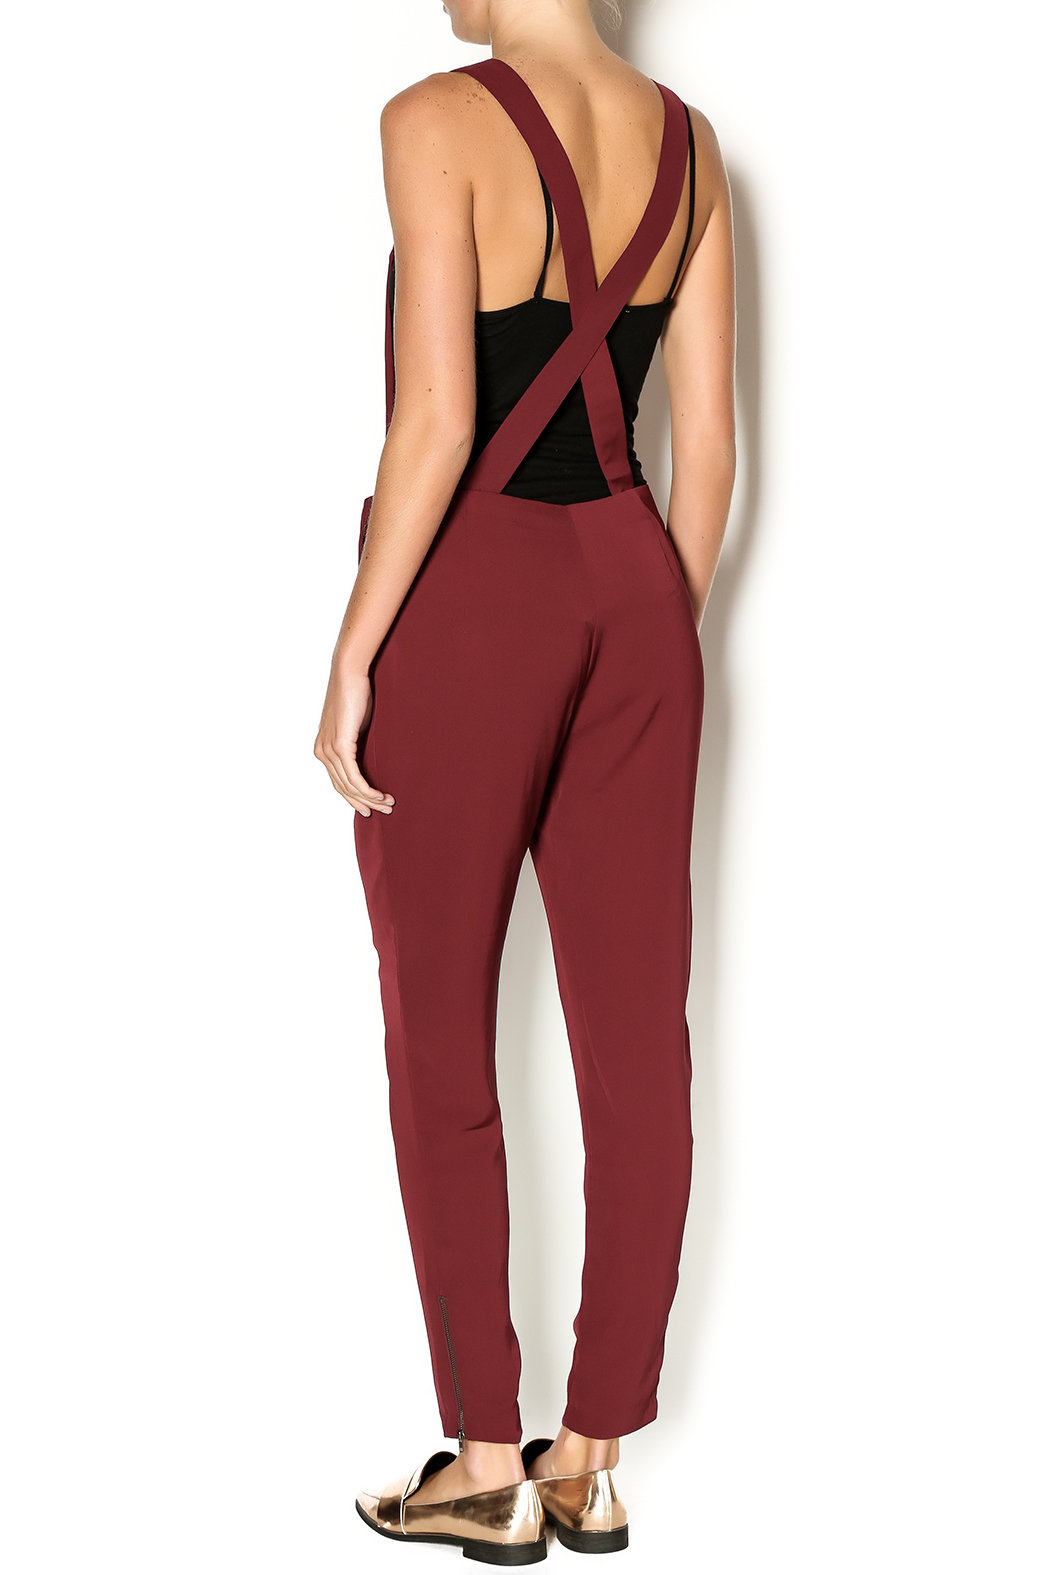 Potter's Pot Red Silk Overalls - Back Cropped Image